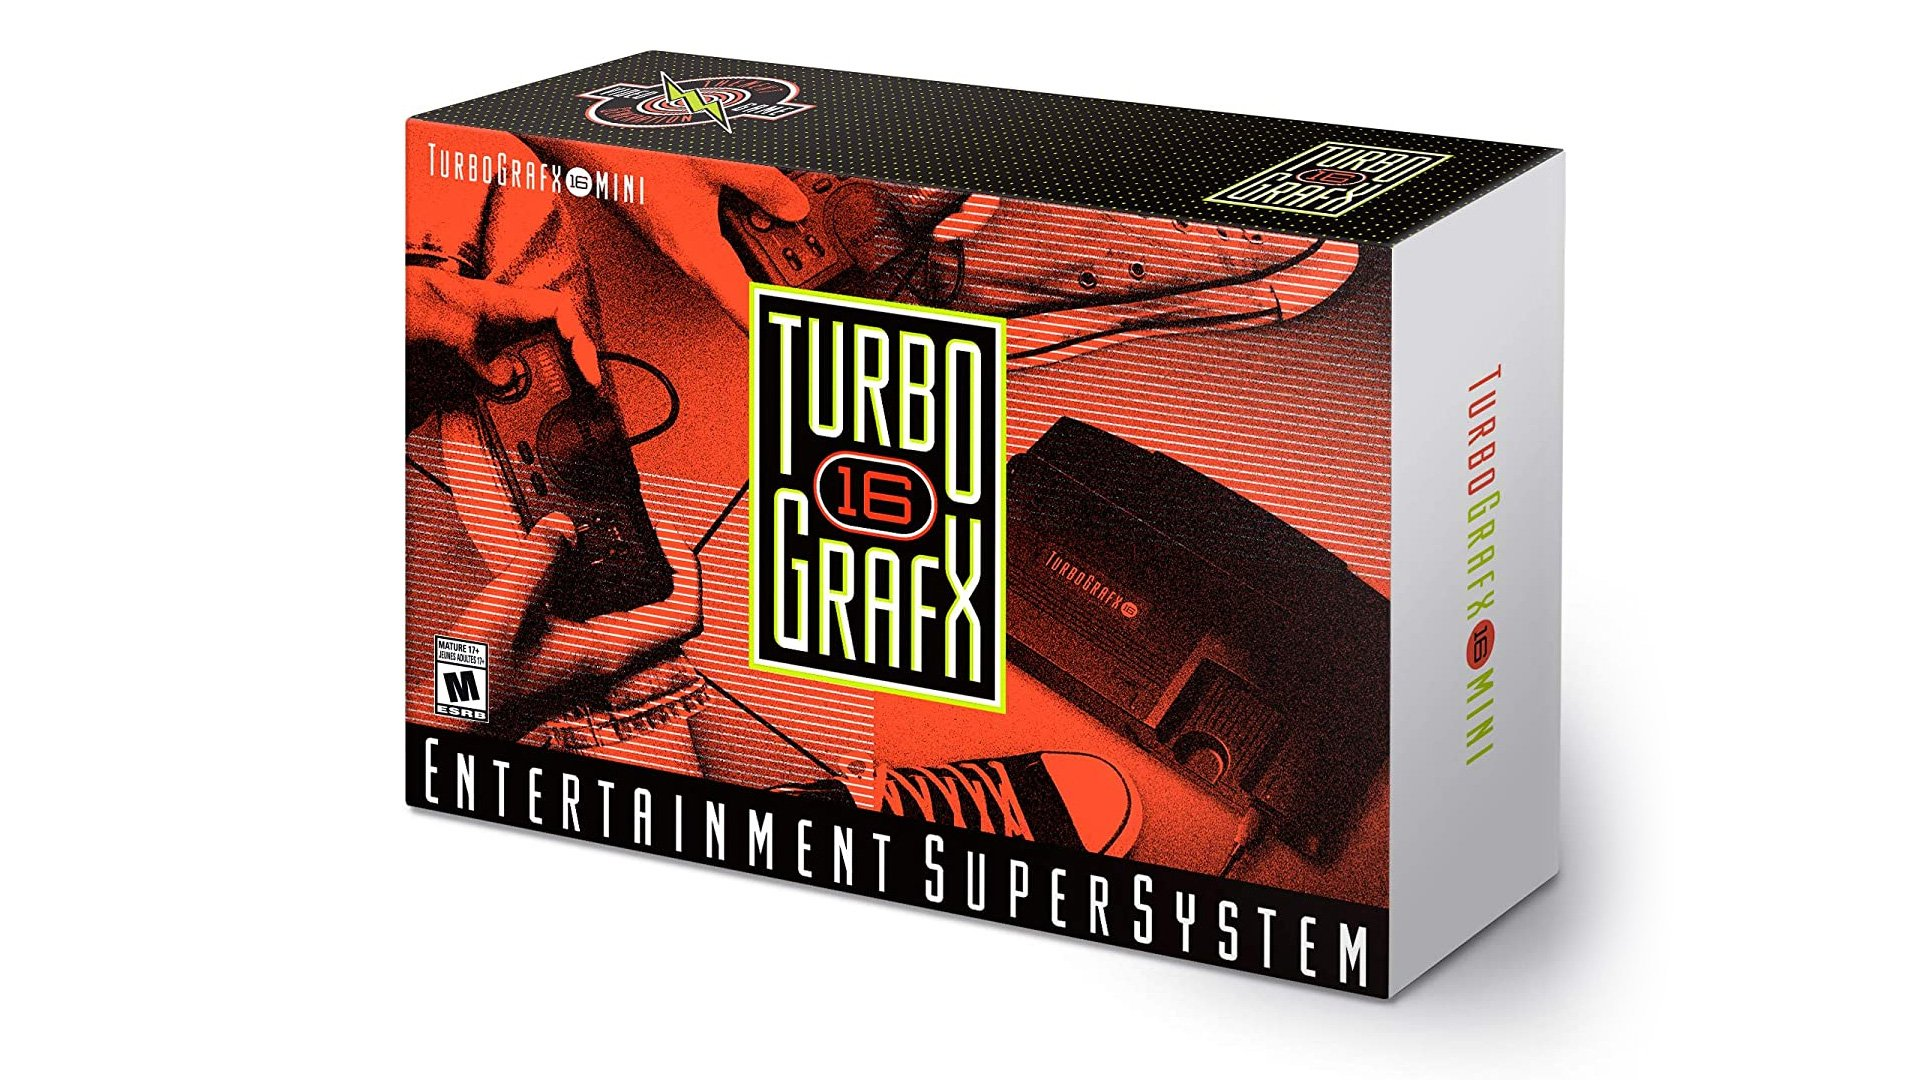 The TurboGrafx-16 Mini is shipping next week in the US screenshot